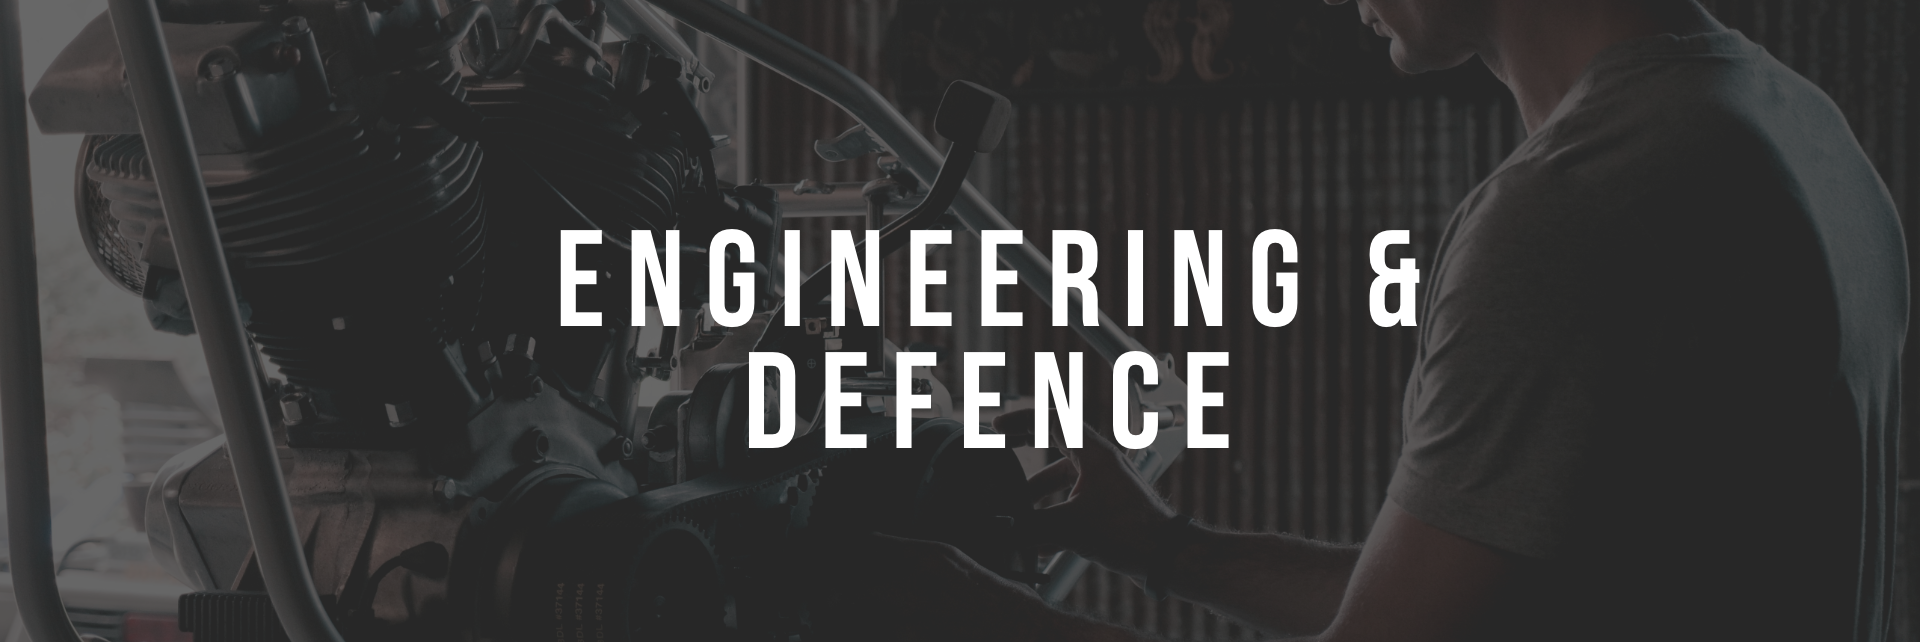 Engineering & Defence Recruitment Specialists